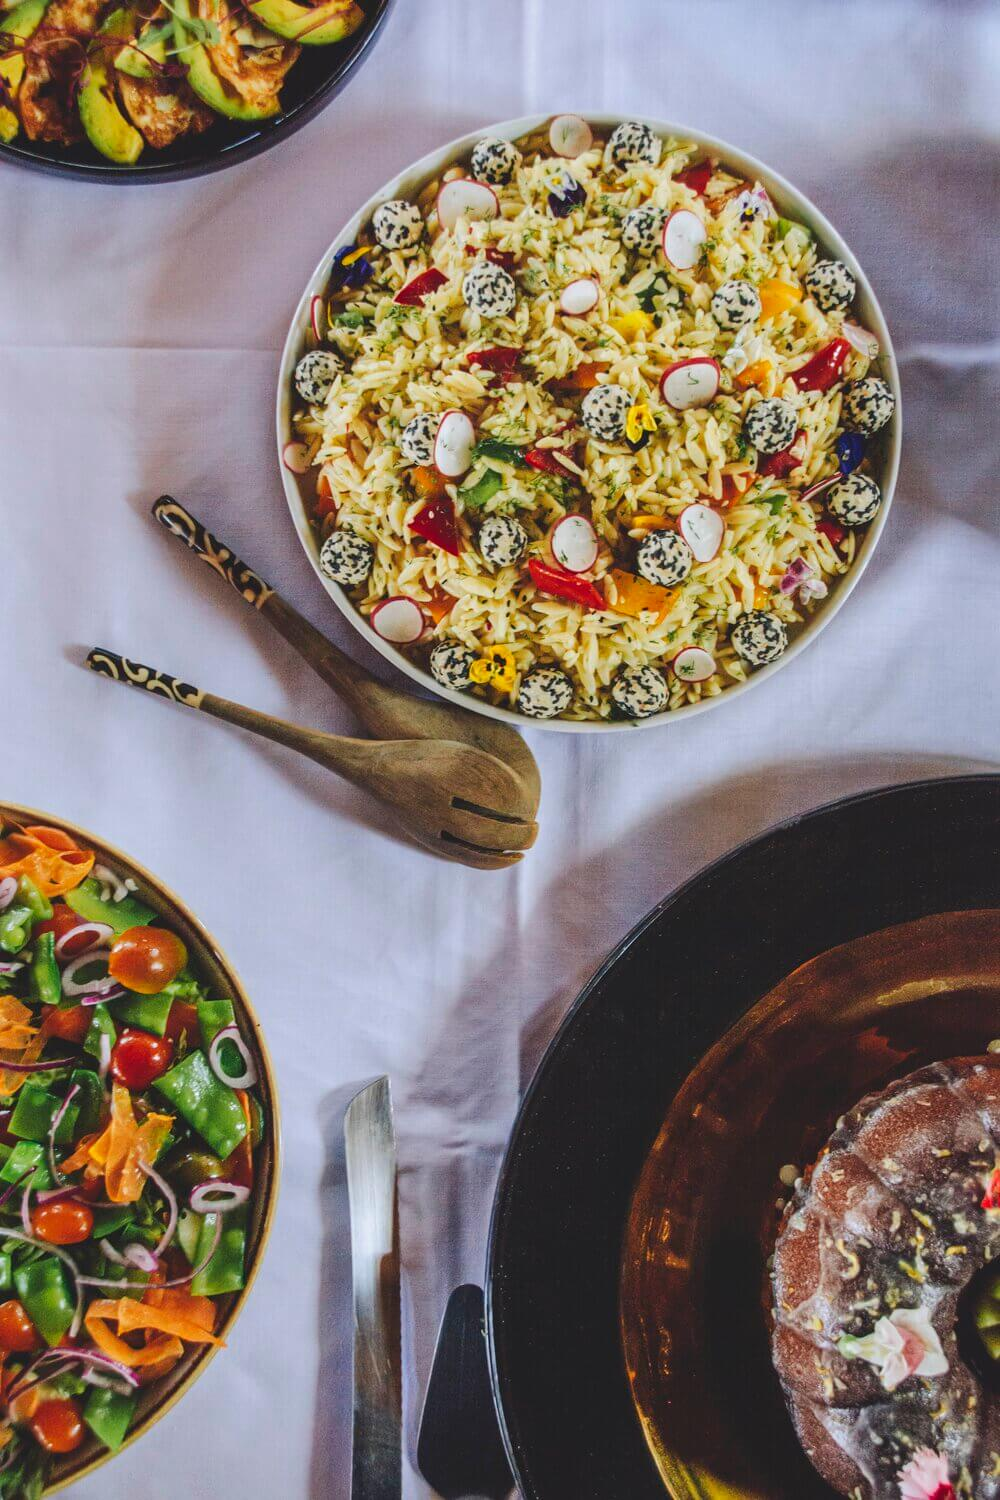 From Our Kitchen - Orzo Salad